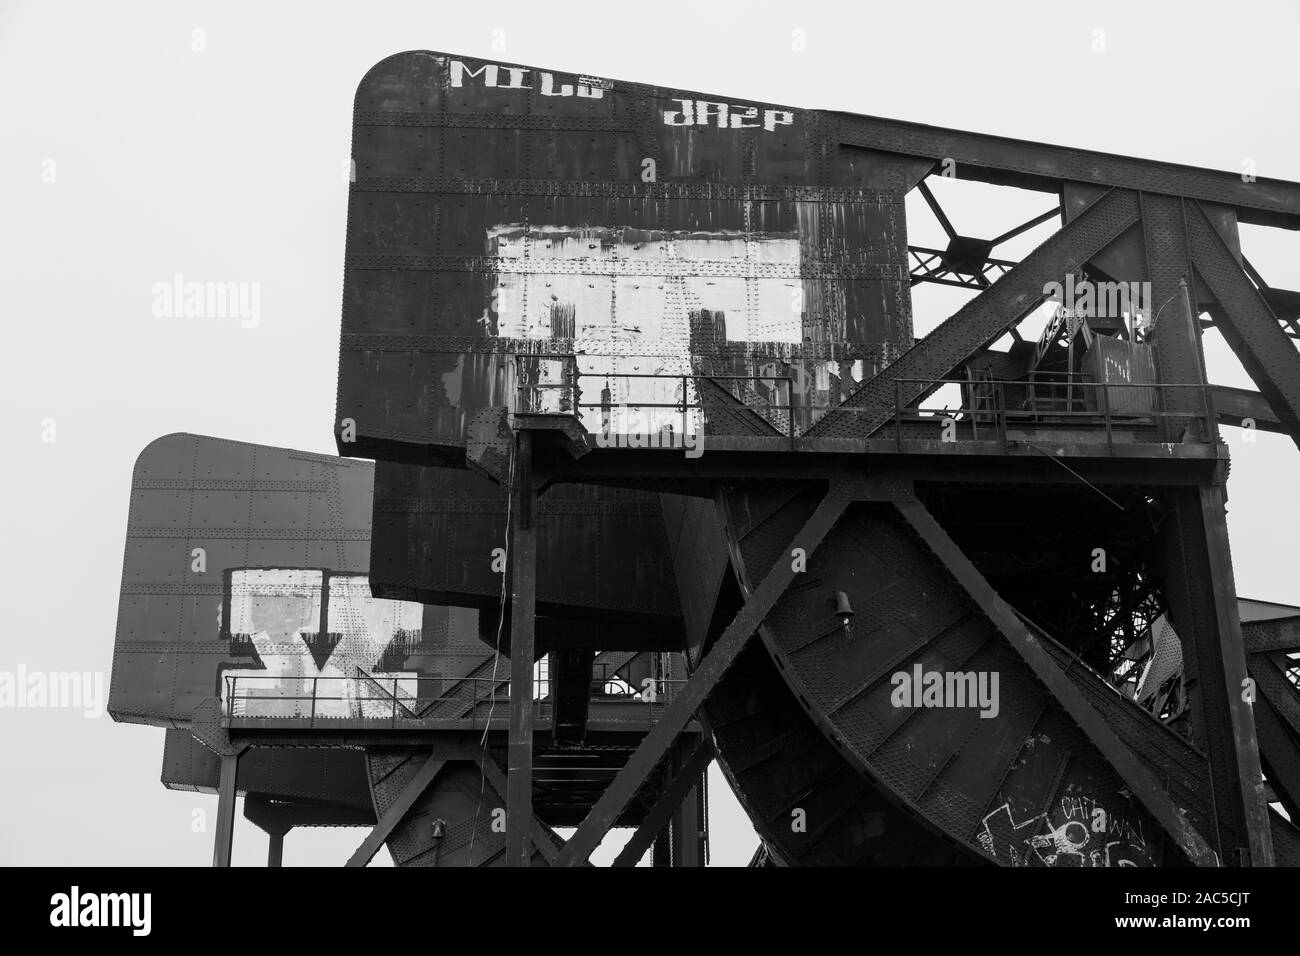 chicago illinois ash street drawbridges over shipping canal steel girders bridge pattern black and white Stock Photo